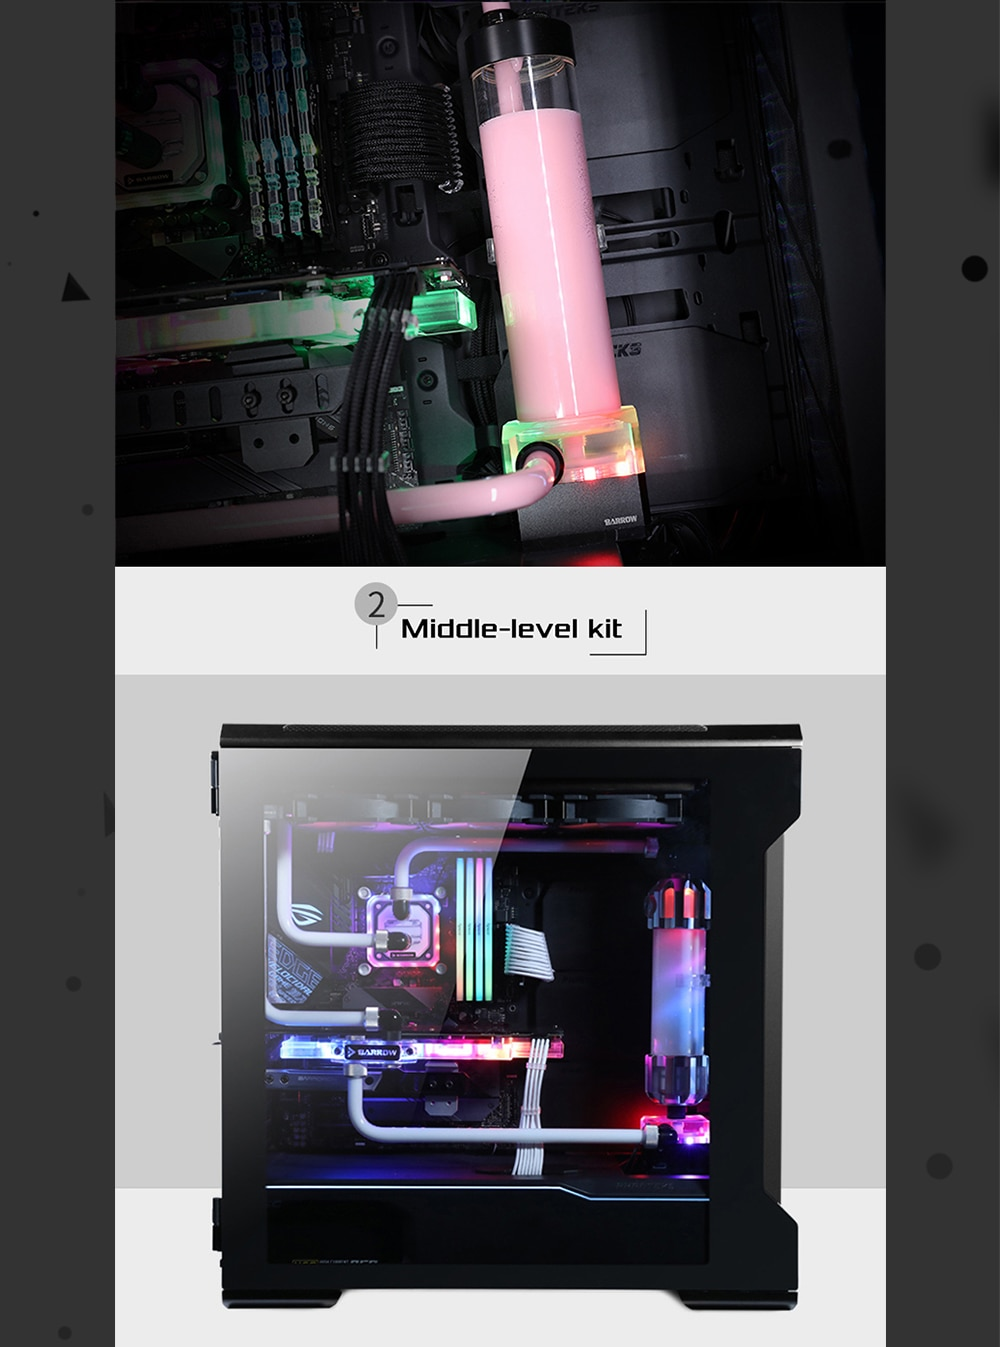 Barrow NK01 Water Cooling Kit With 5v 3pin Lighting , 2021 New High Quality Complete Loop , 360 Radiator , CPU Block , ReservoirBarrow YR01, Hardtube CPU WaterCooling Kits, 240mm Radiator, CPU Block, 130mm Reservoir, for CPU cooling AM3/AM4/115X/2011Hardtube CPU WaterCooling Kits,240mm Radiator WaterCooling Kits,Barrow YR01 WaterCooling